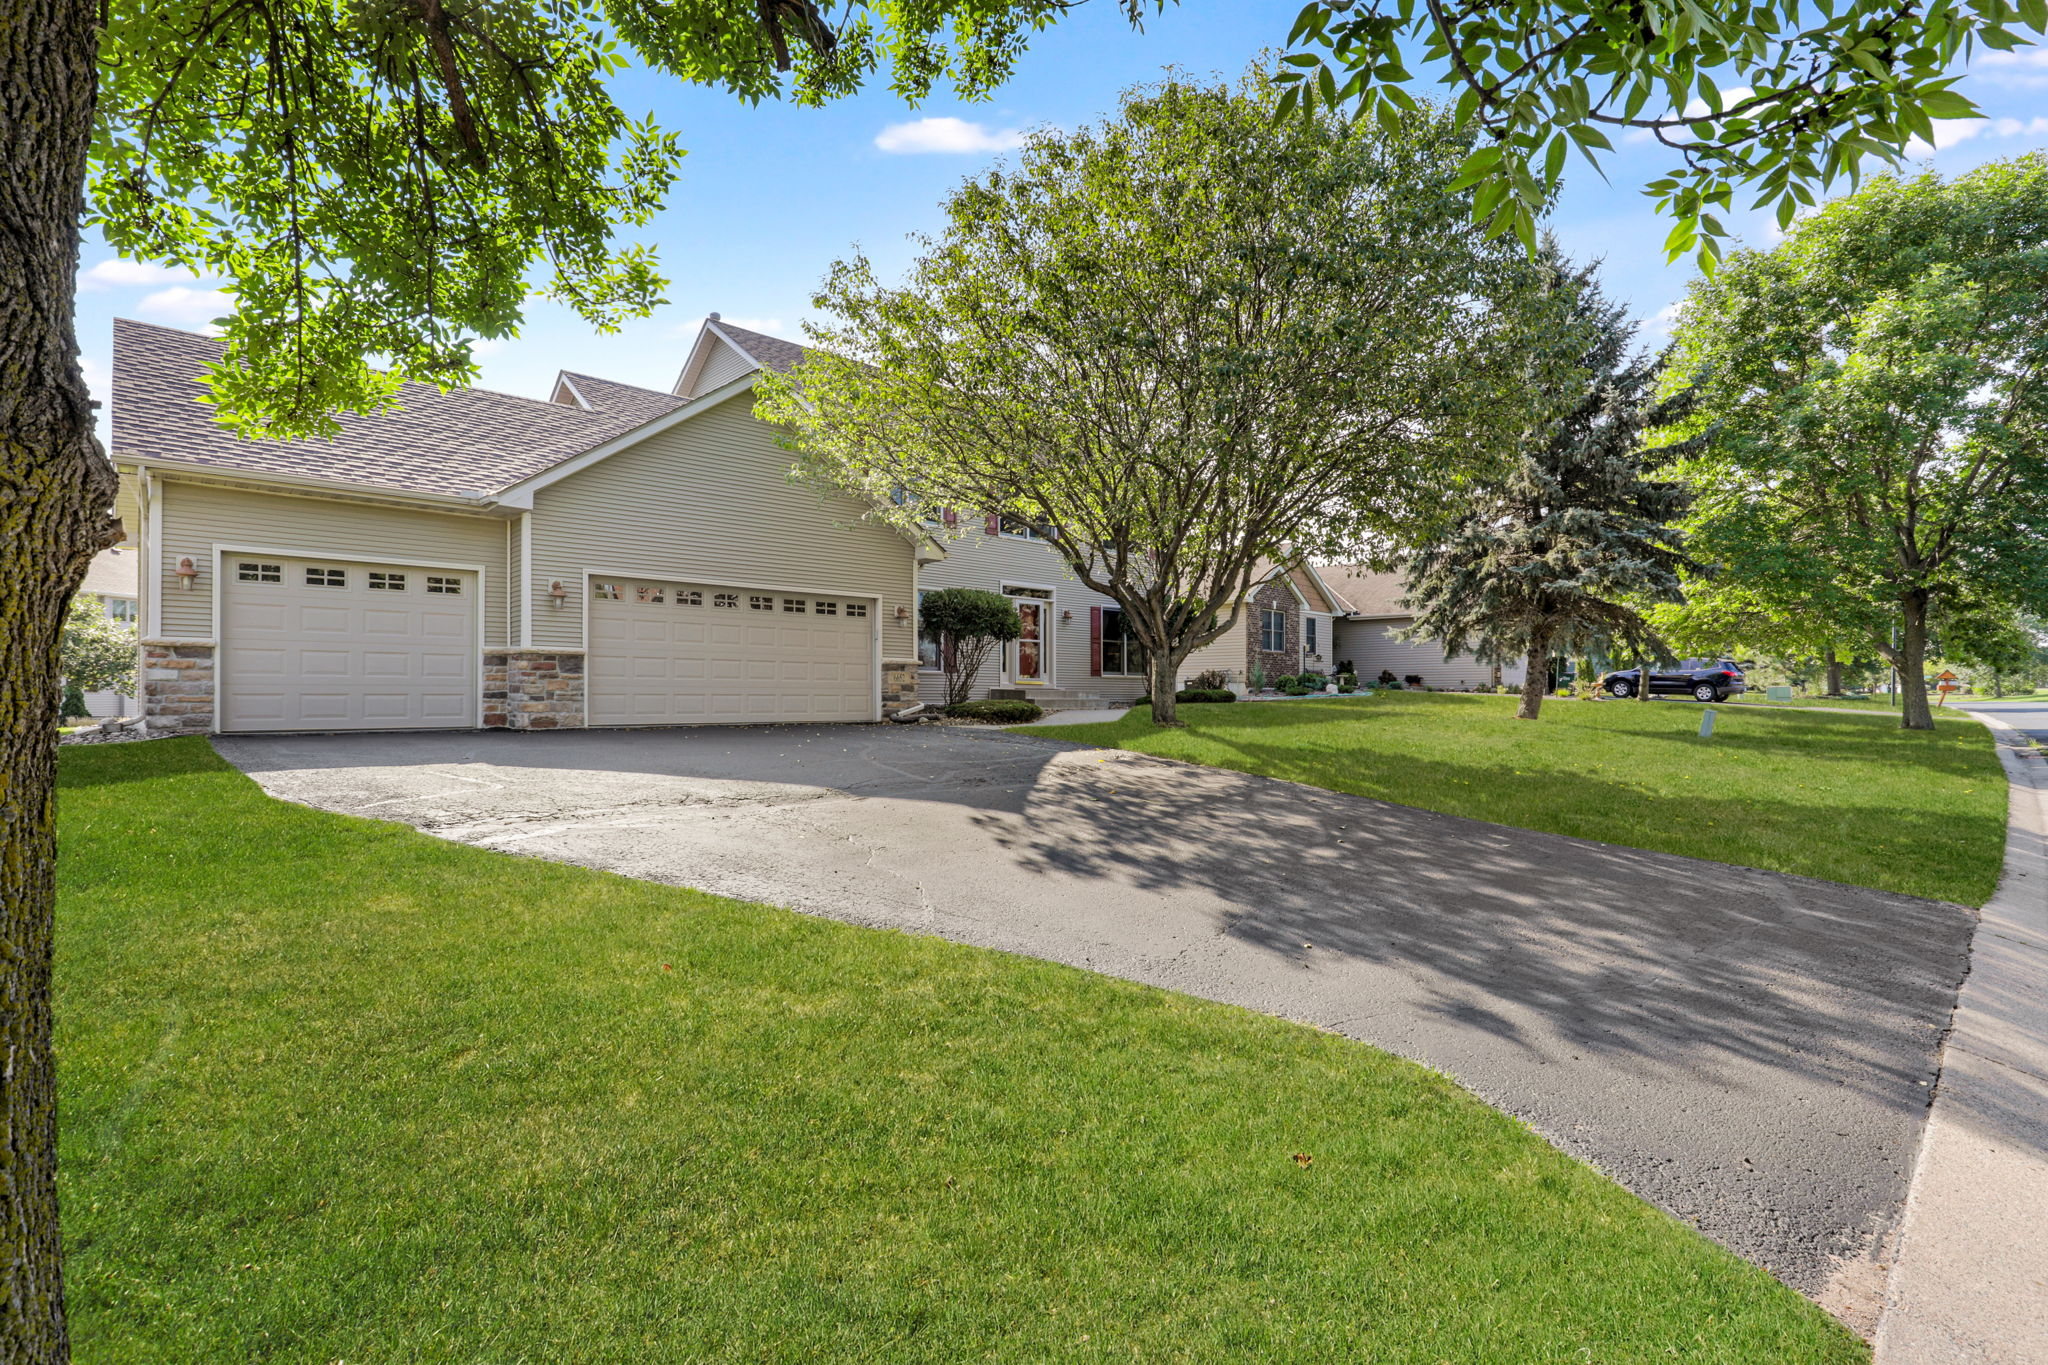 6652 Clearwater Creek Dr, Lino Lakes, MN 55038, USA Photo 46